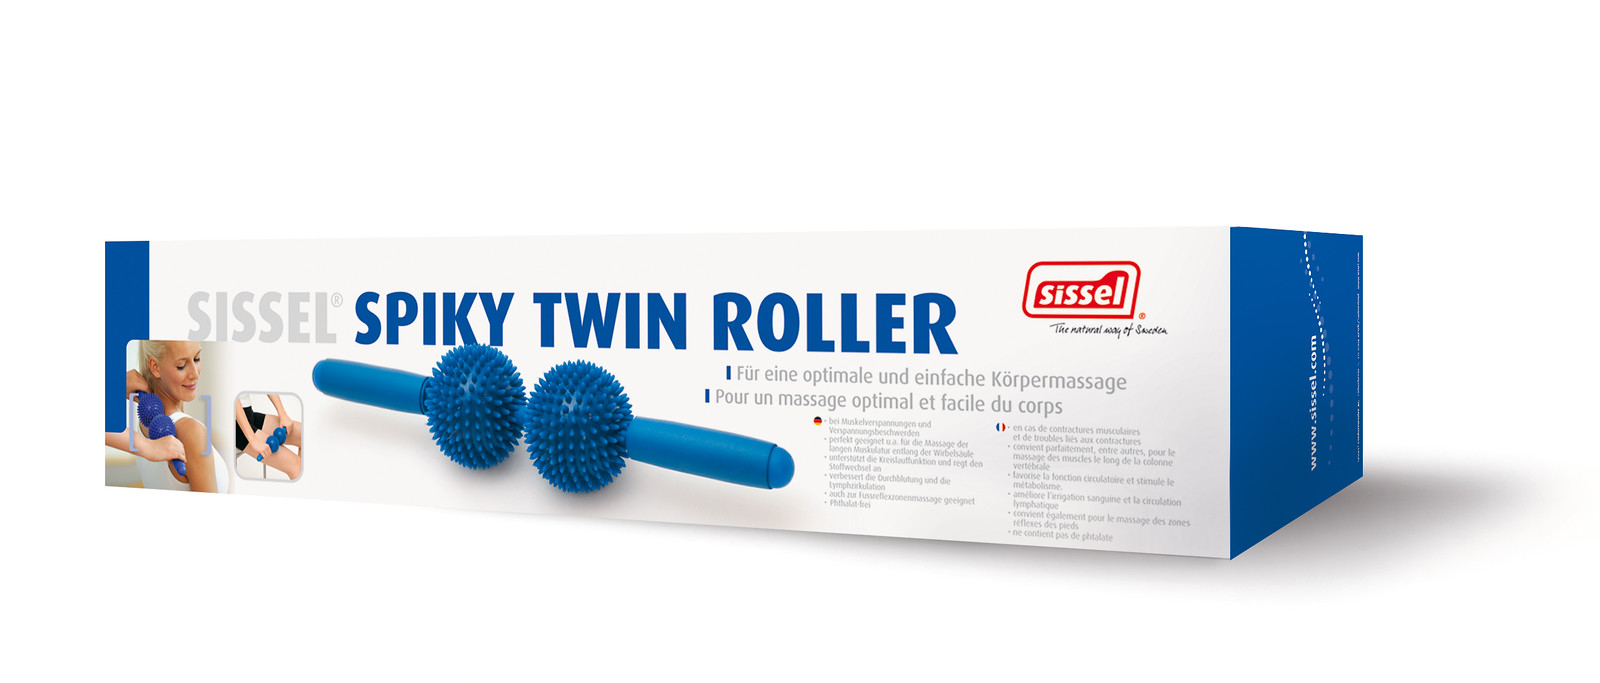 Spiky twin roller